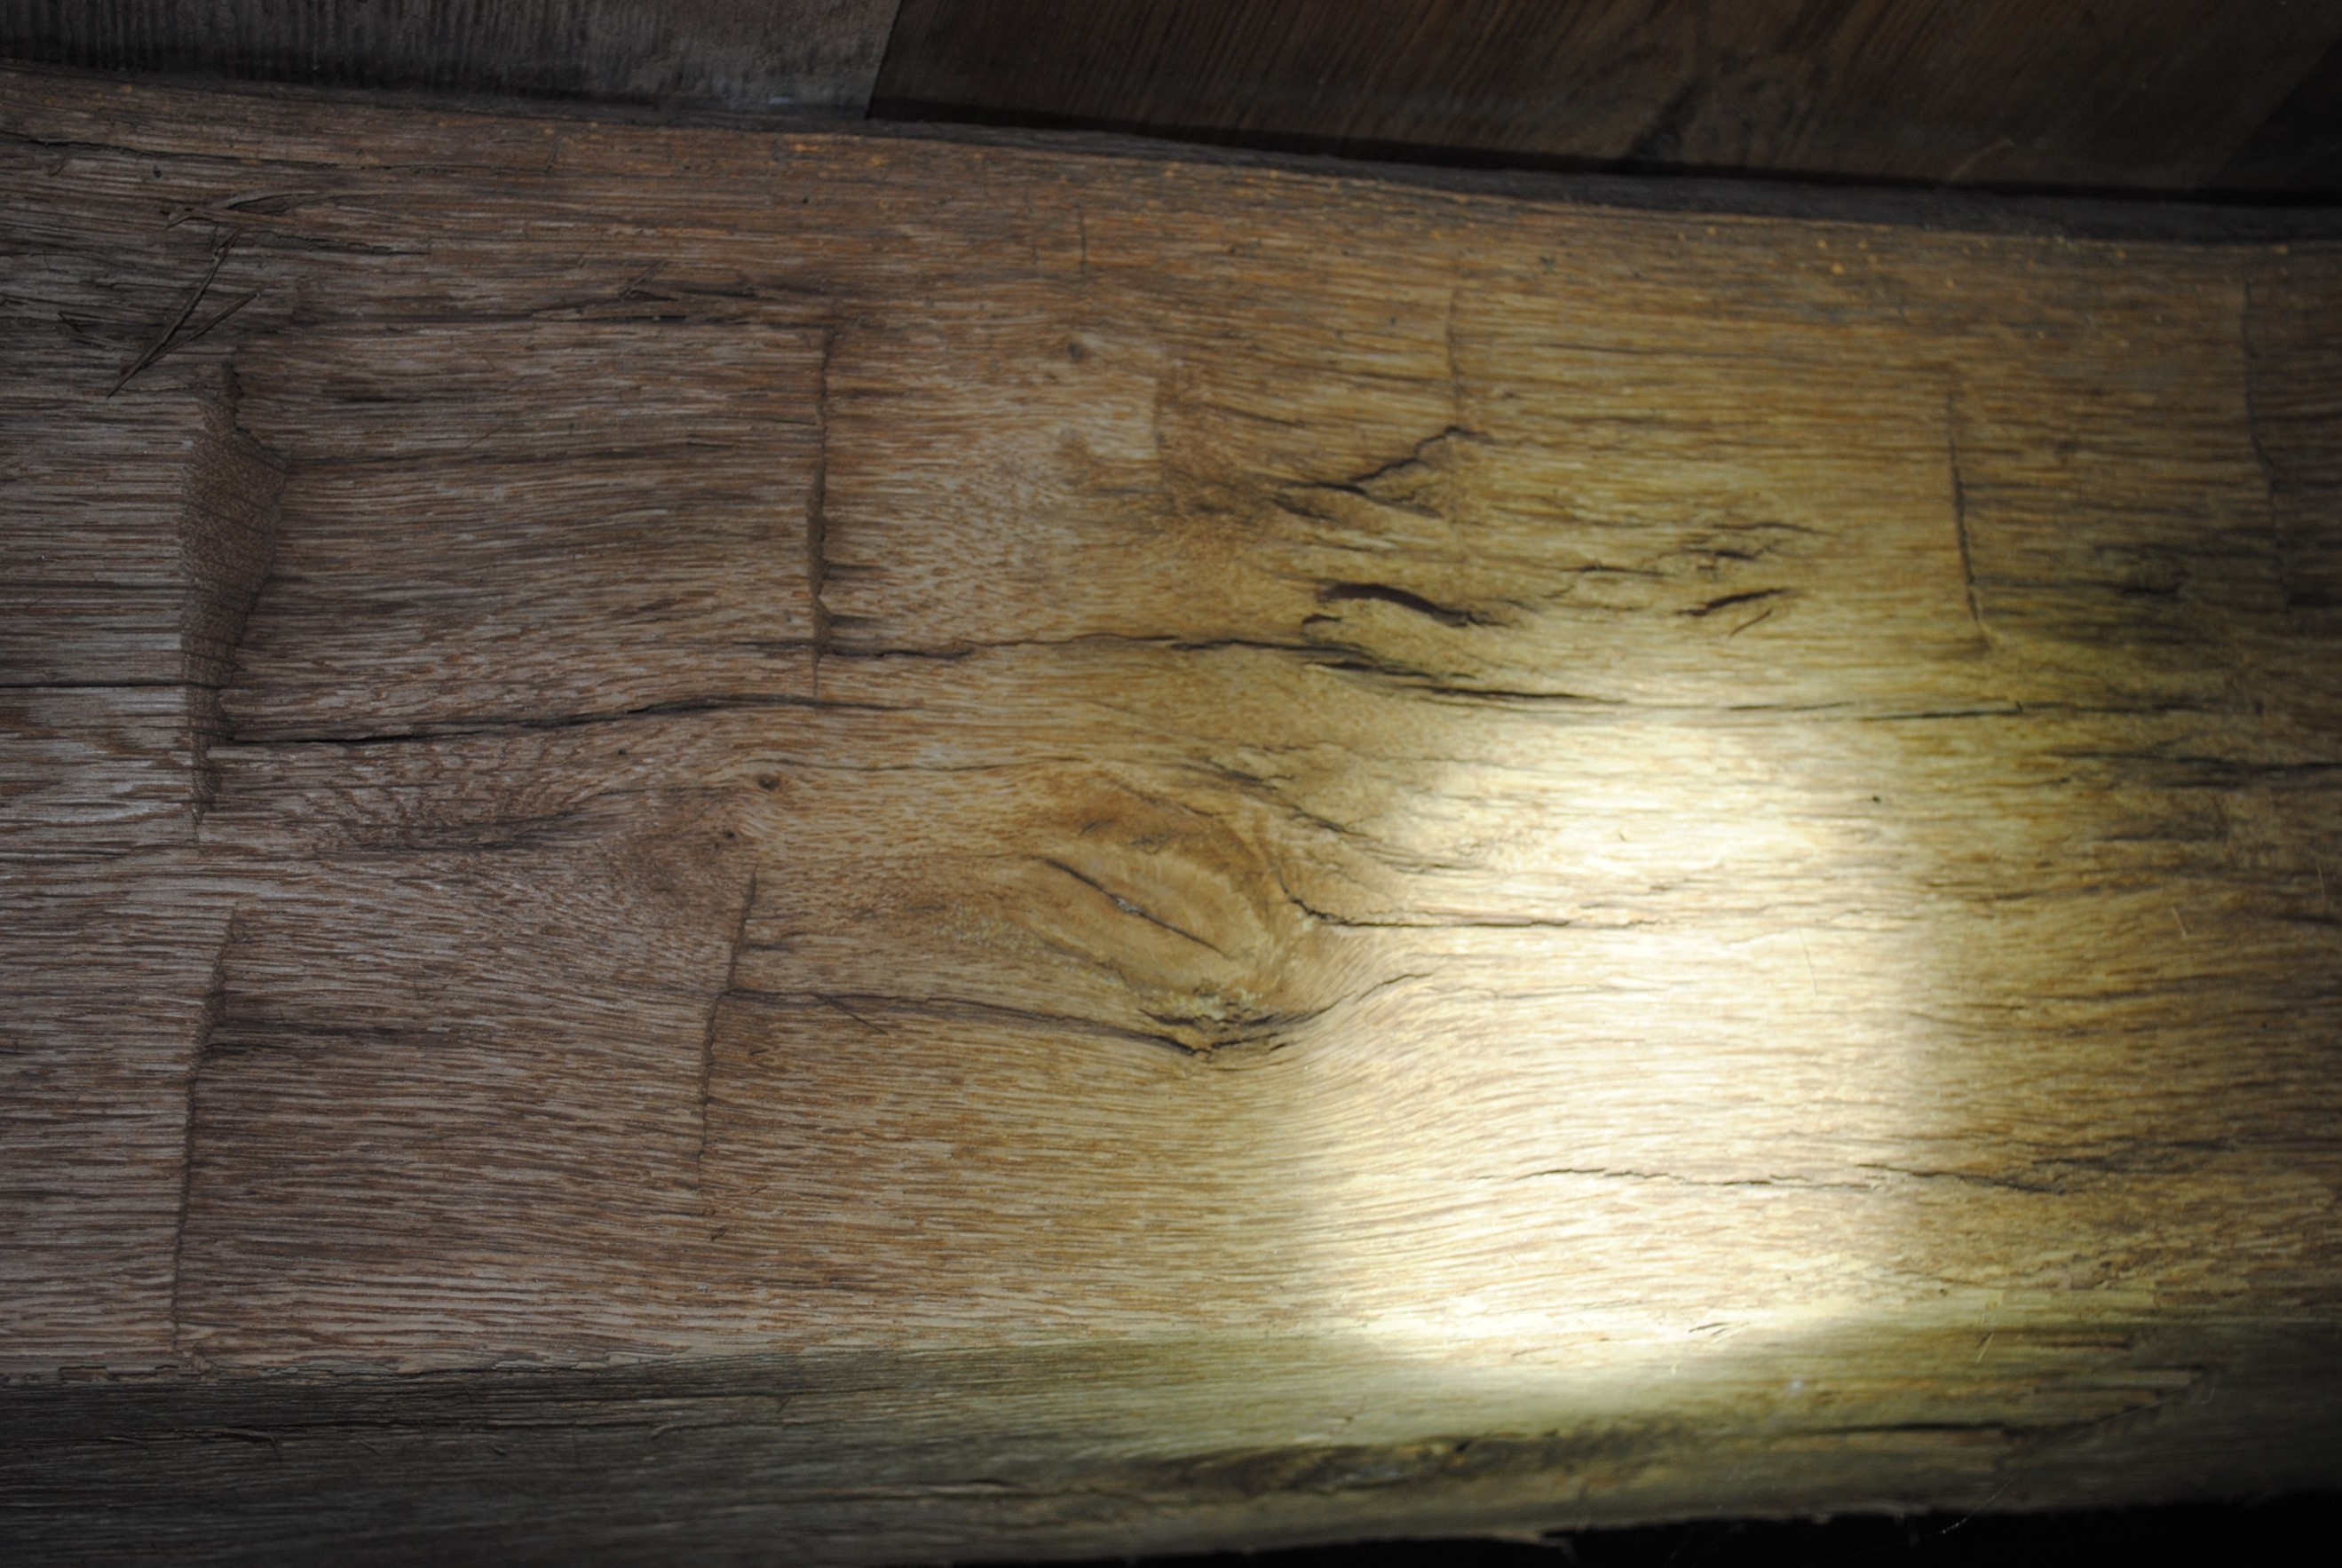 Axe marks on beams